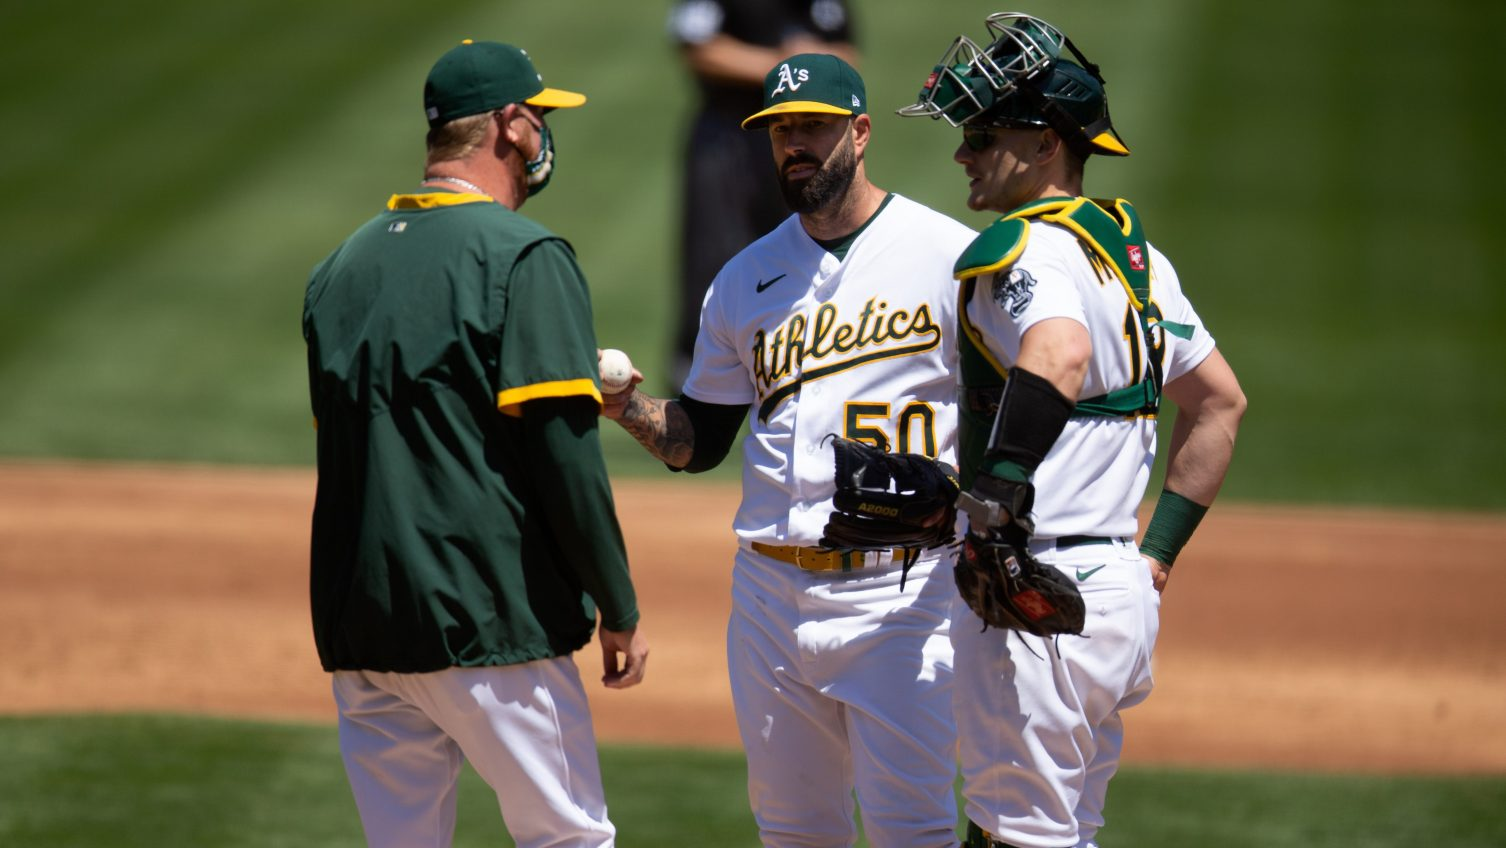 Athletics' Mike Fiers likely not throwing another month after injection